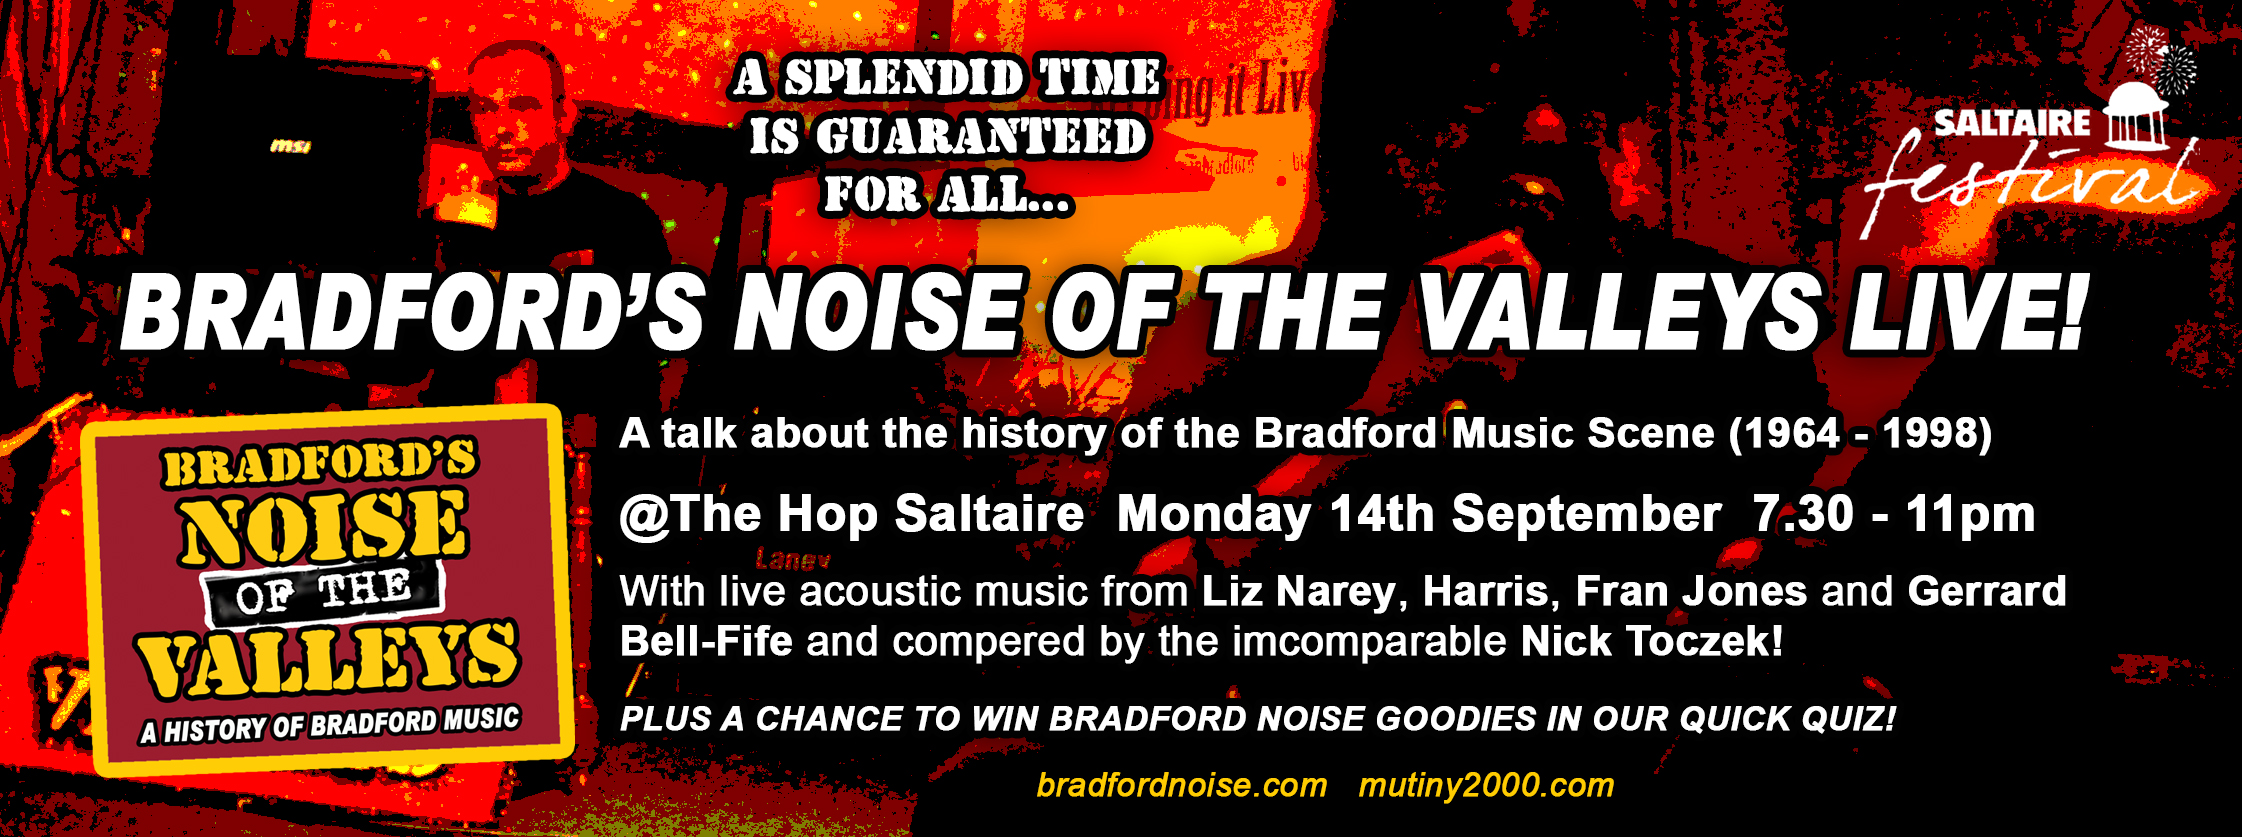 Saltaire Festival Facebook banner